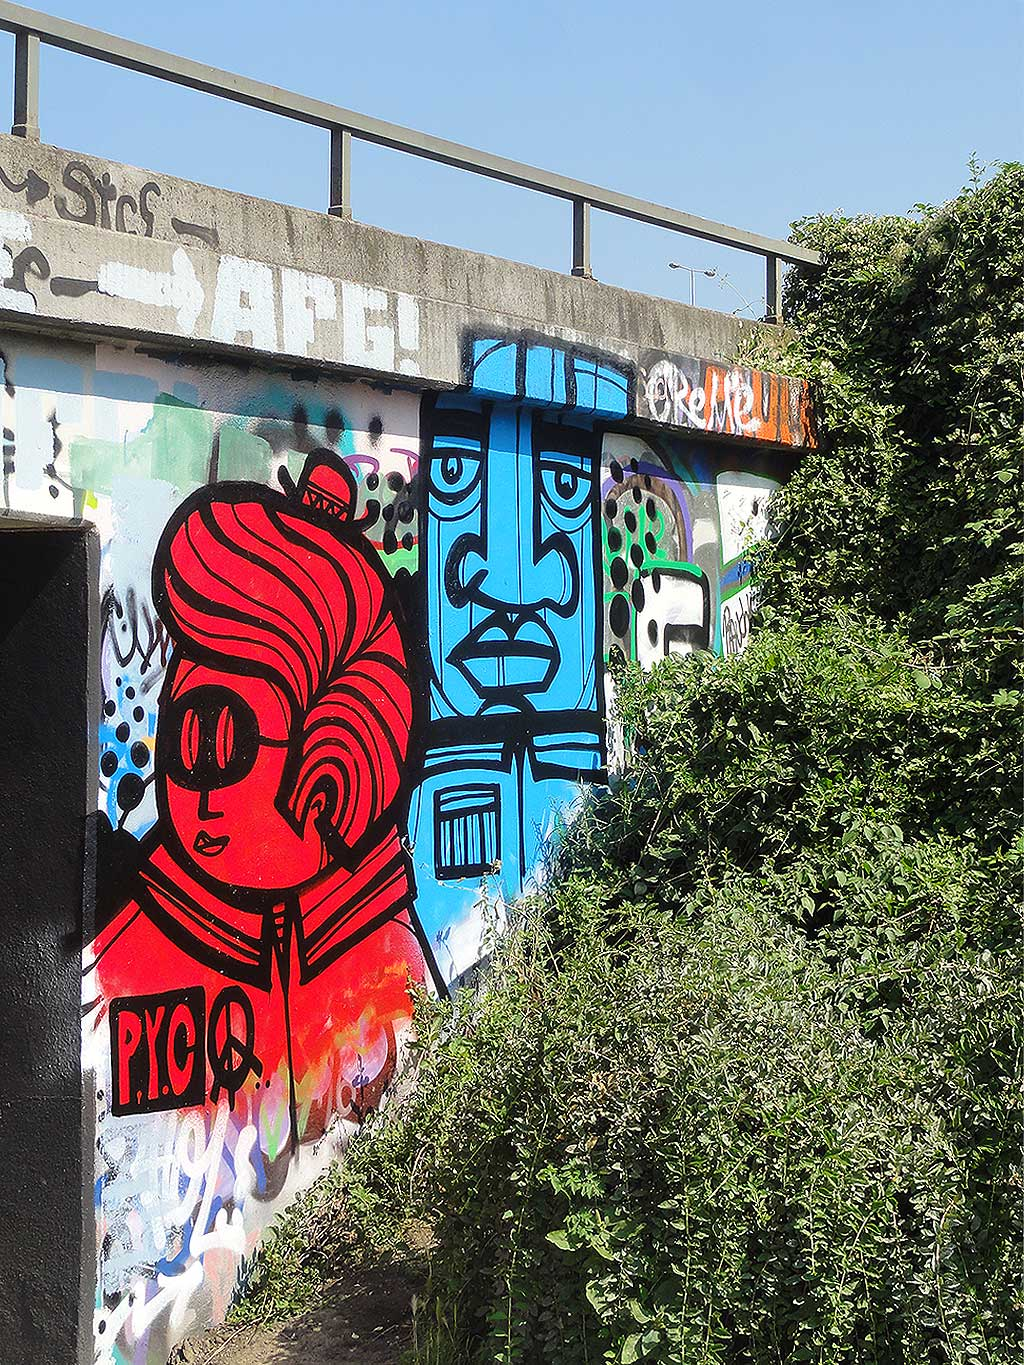 pyc-hall-of-fame-ratswegkreisel-frankfurt-graffiti-1